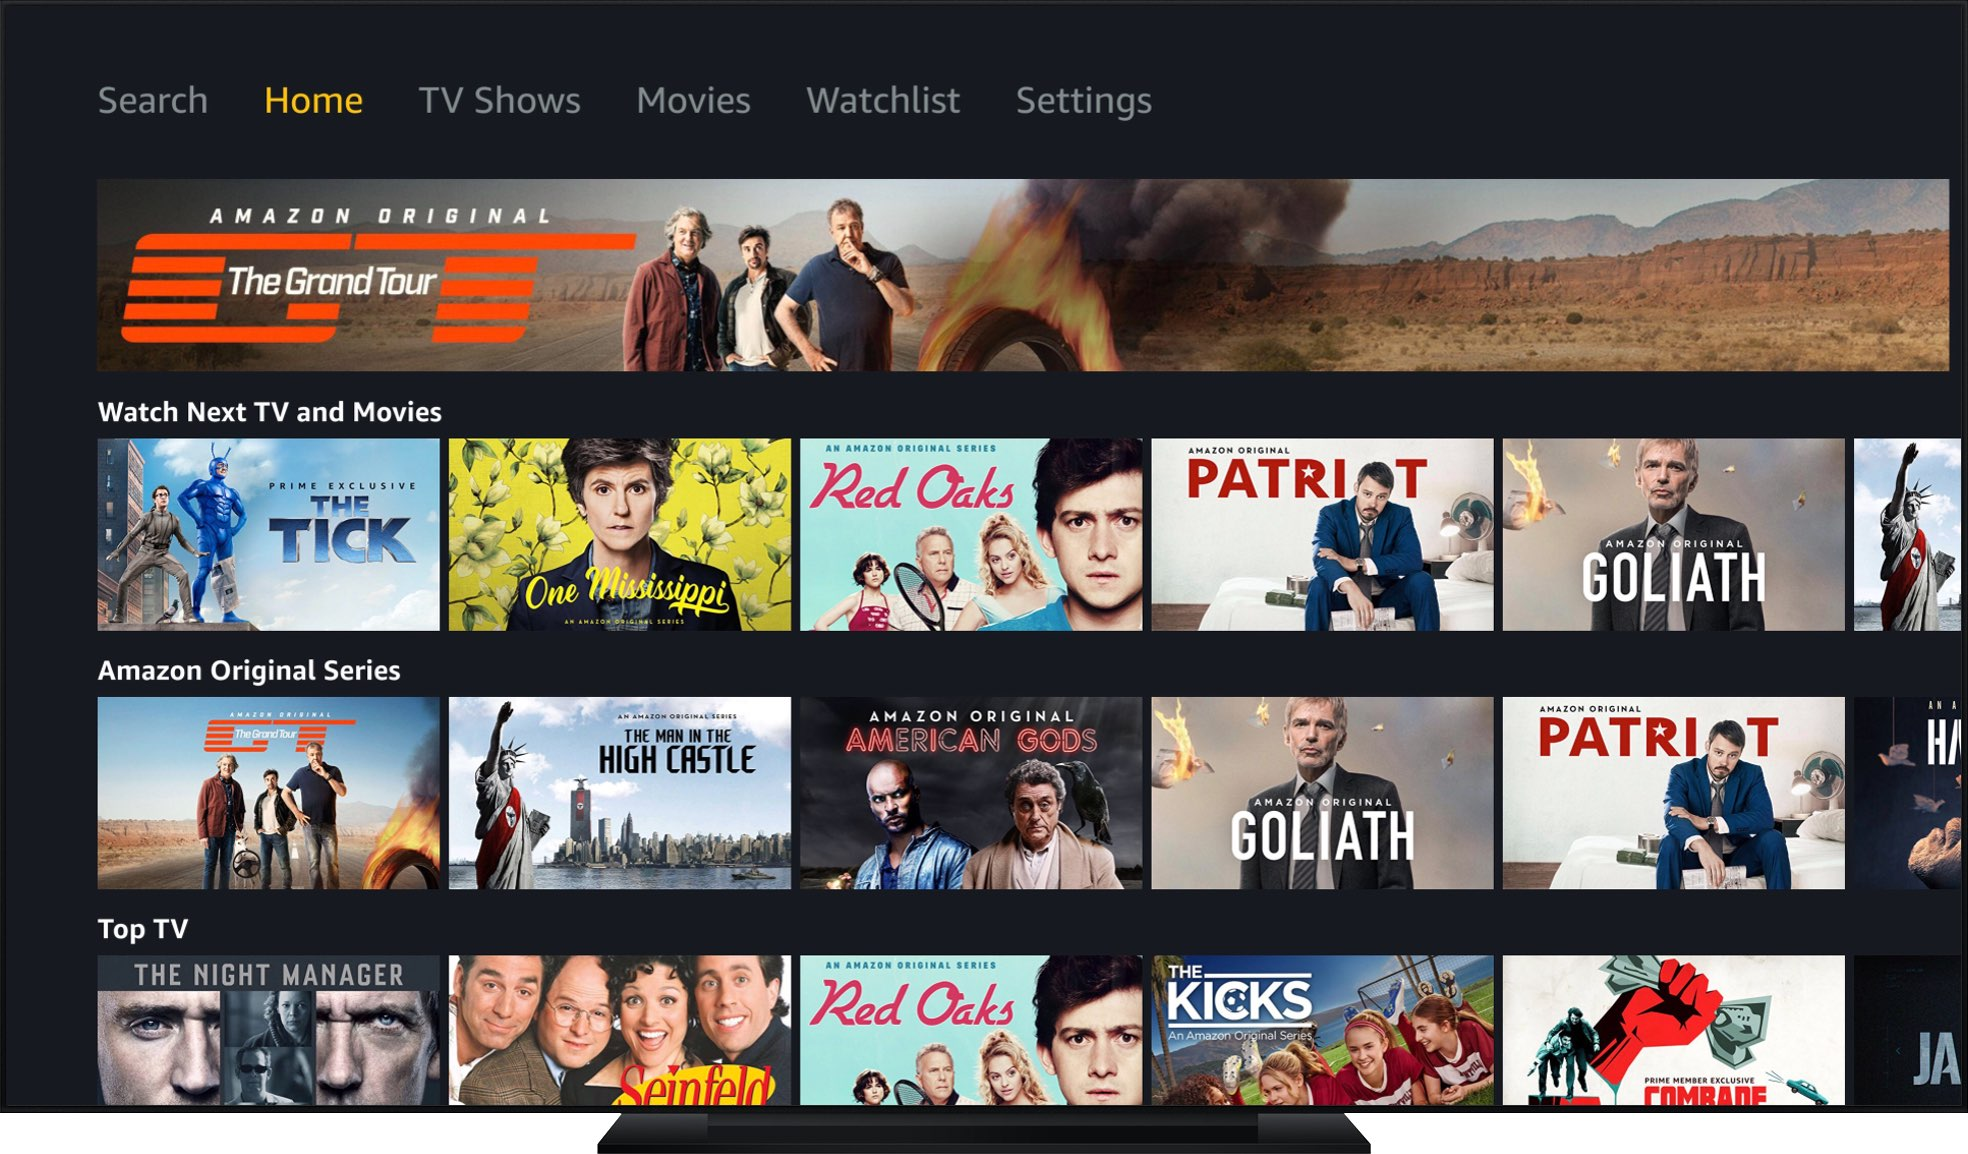 Prime Video for Apple TV lacks support for Dolby Vision and